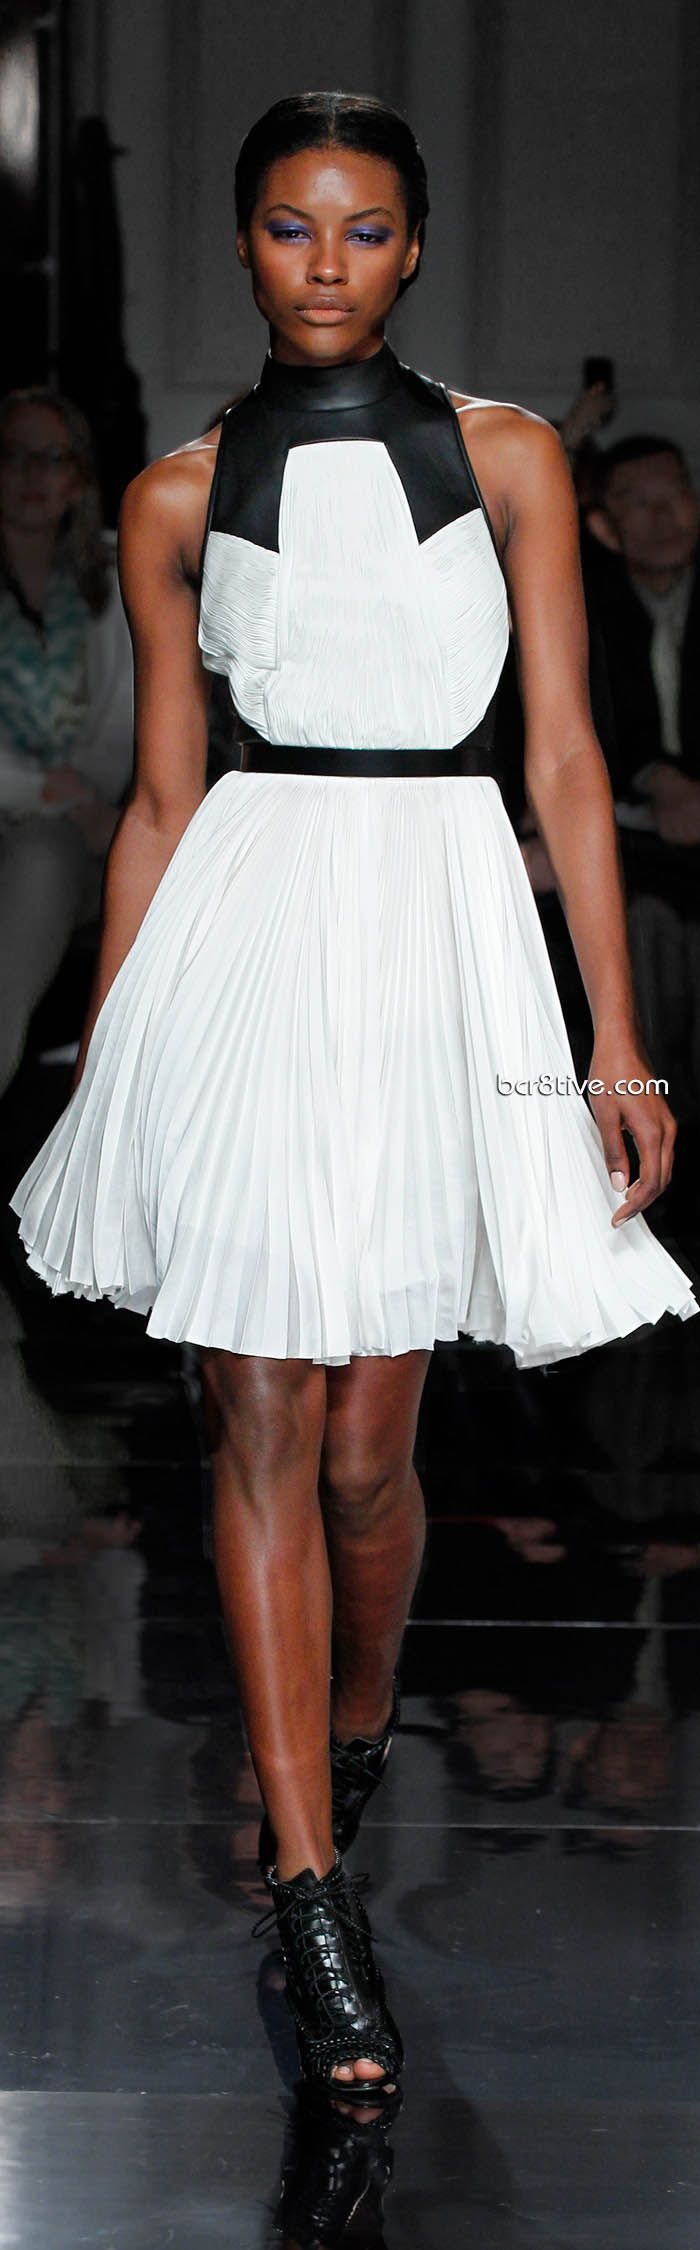 Fall winter 2013 fashion trends for women - Jason Wu Fall Winter 2013 14 New York Fashion Week